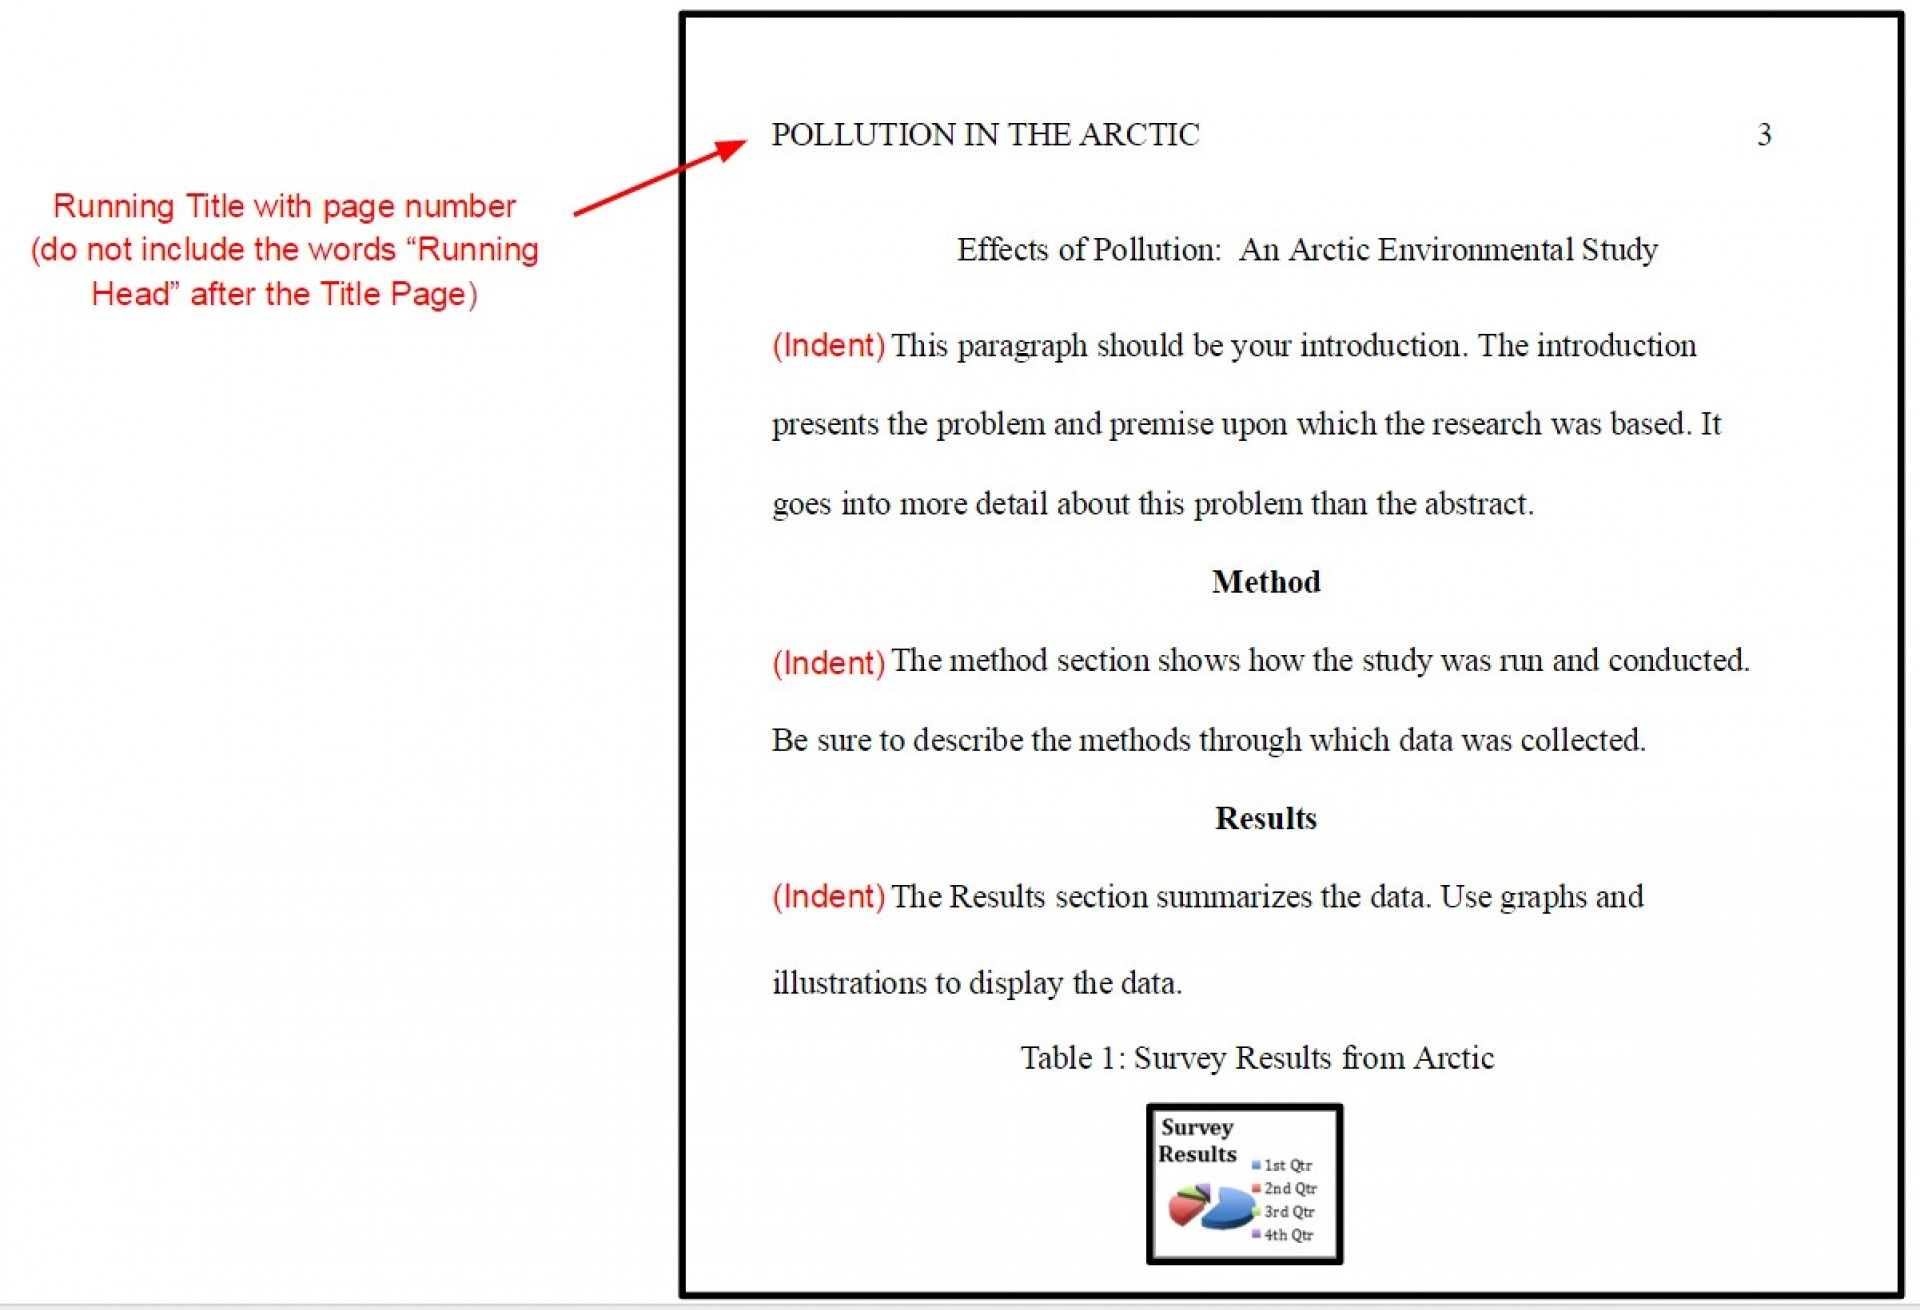 003 Example Of Research Paper Written In Apa Format Excellent Sample A 1920